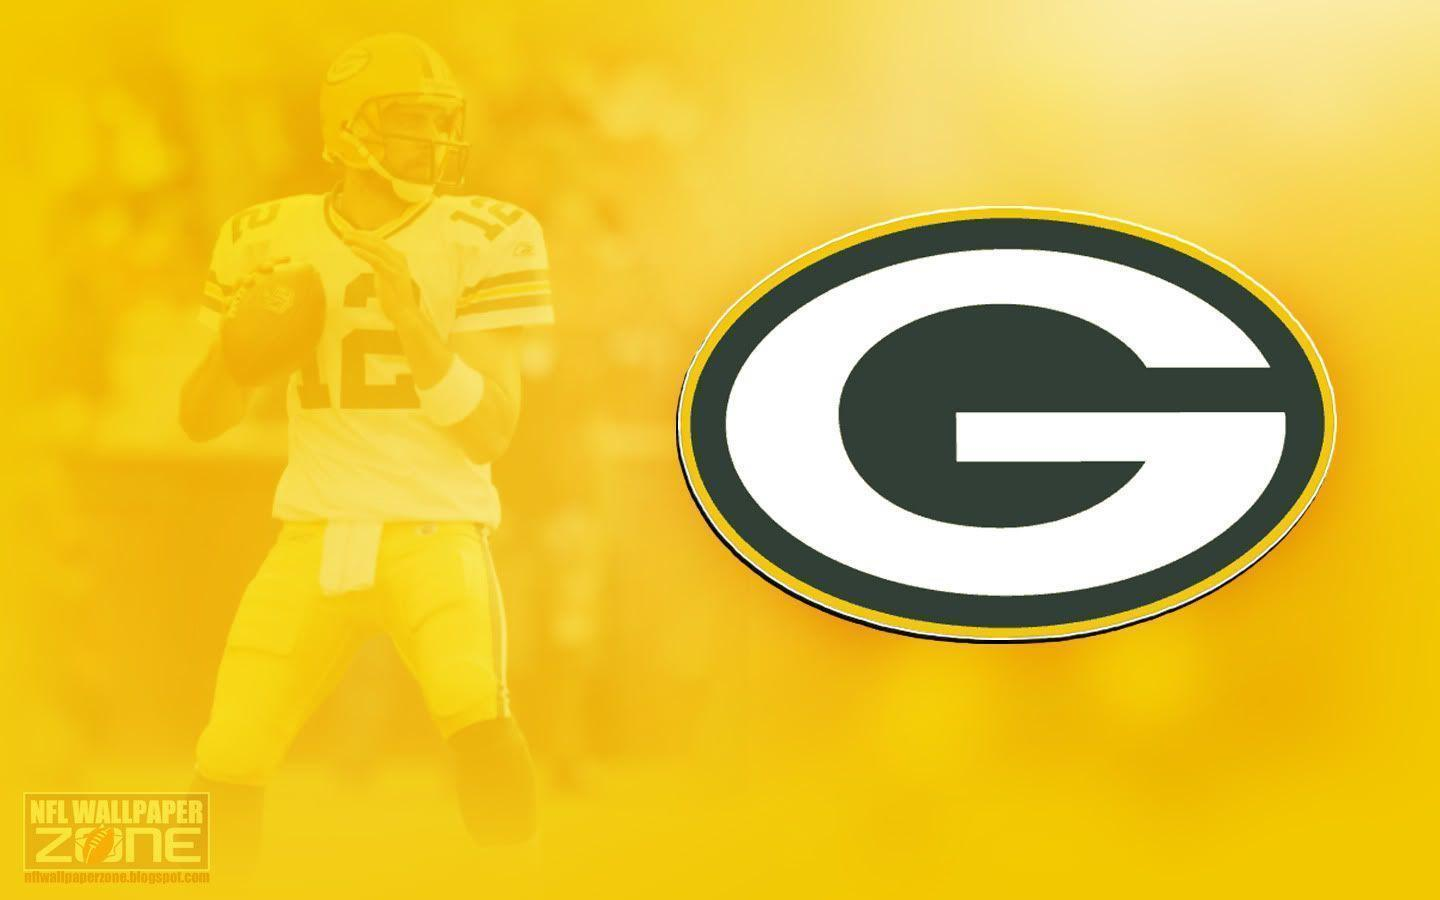 Green Bay Packers Pictures, Image & Photos